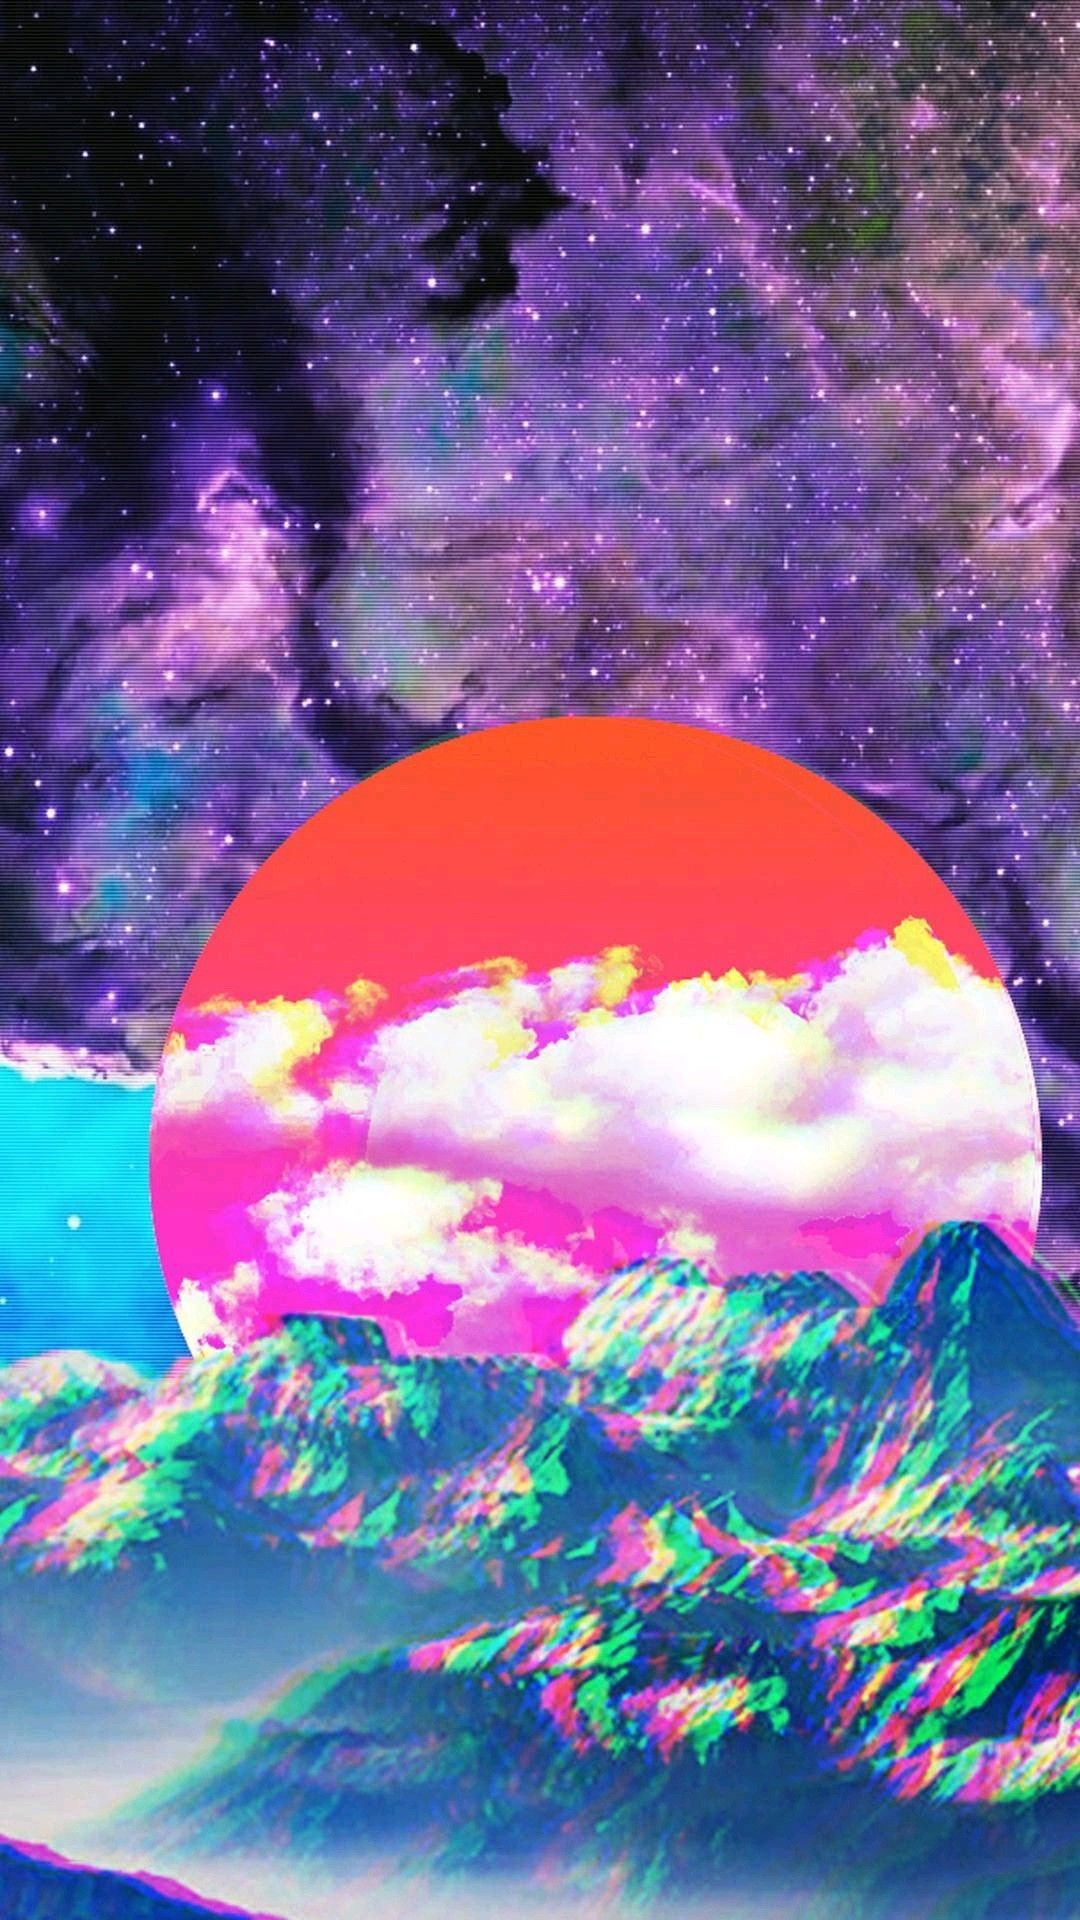 Pin By Samirah On Aesthetic Vaporwave Wallpaper Cool Wallpapers